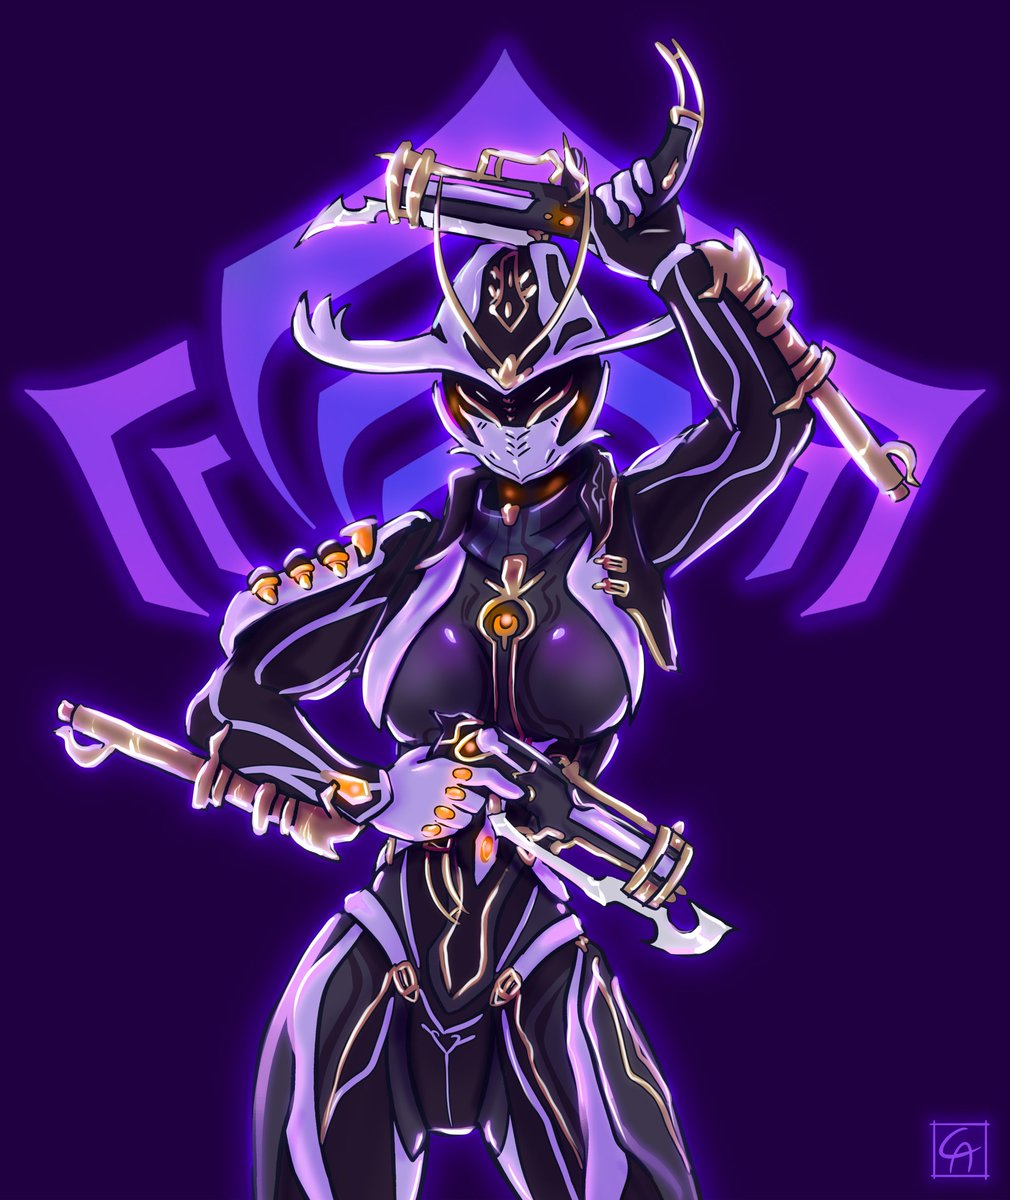 Complete Alienation Digital Artist On Twitter One More Fanart Drawing For Warframe This Time With Nova Prime Nova Warframe Novaprime Fanart Thiccchickgaming Https T Co Aoonga5zct See more ideas about warframe tenno, warframe art, concept art. nova warframe novaprime fanart